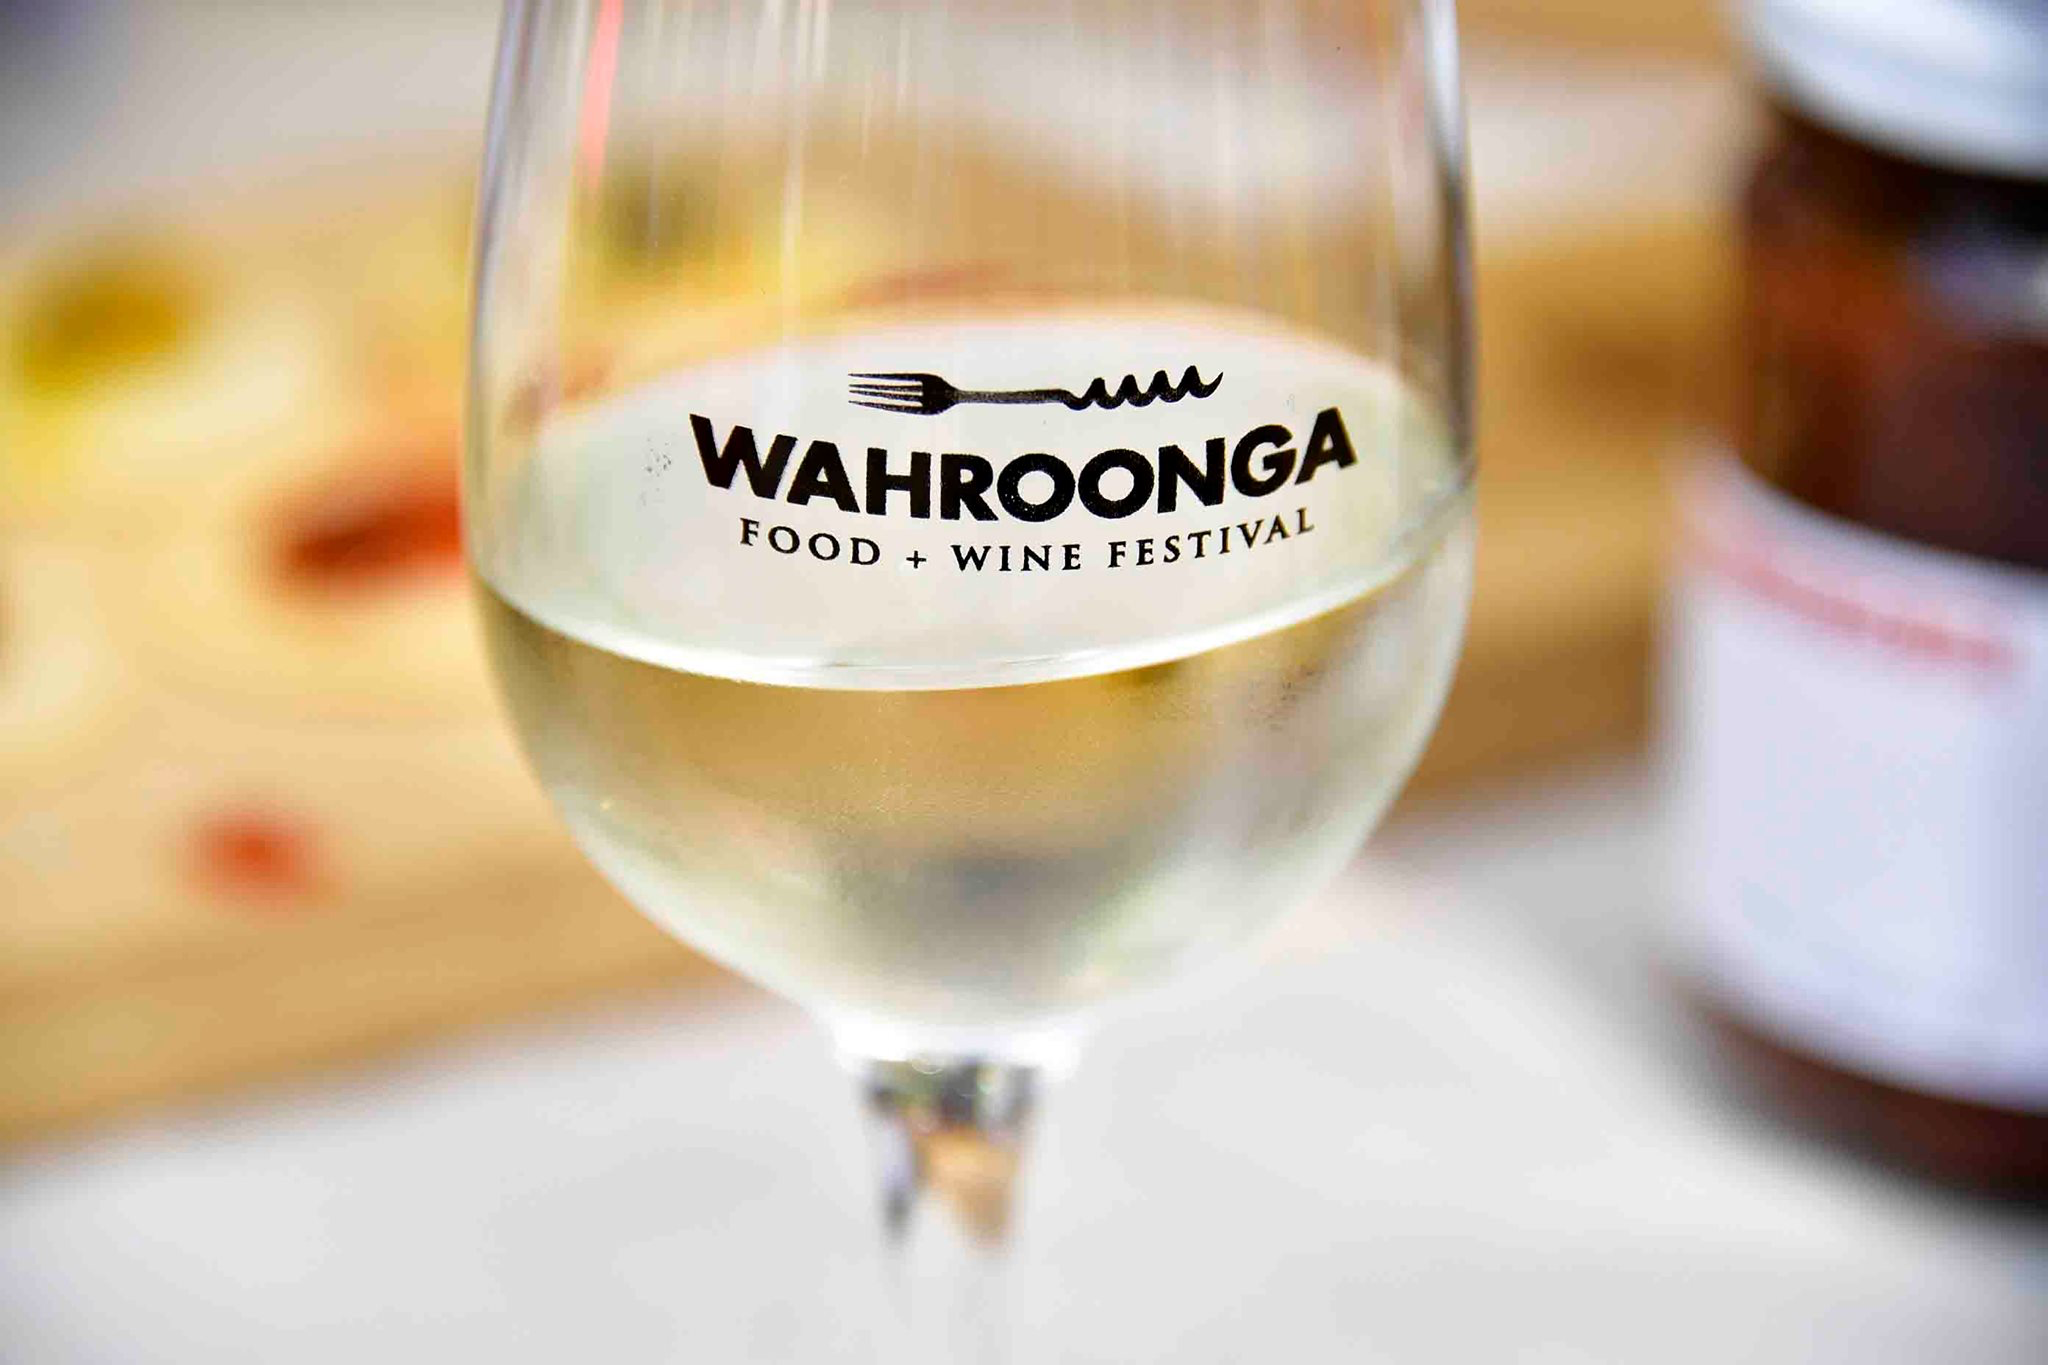 Wahroonga Food + Wine Festival 2019